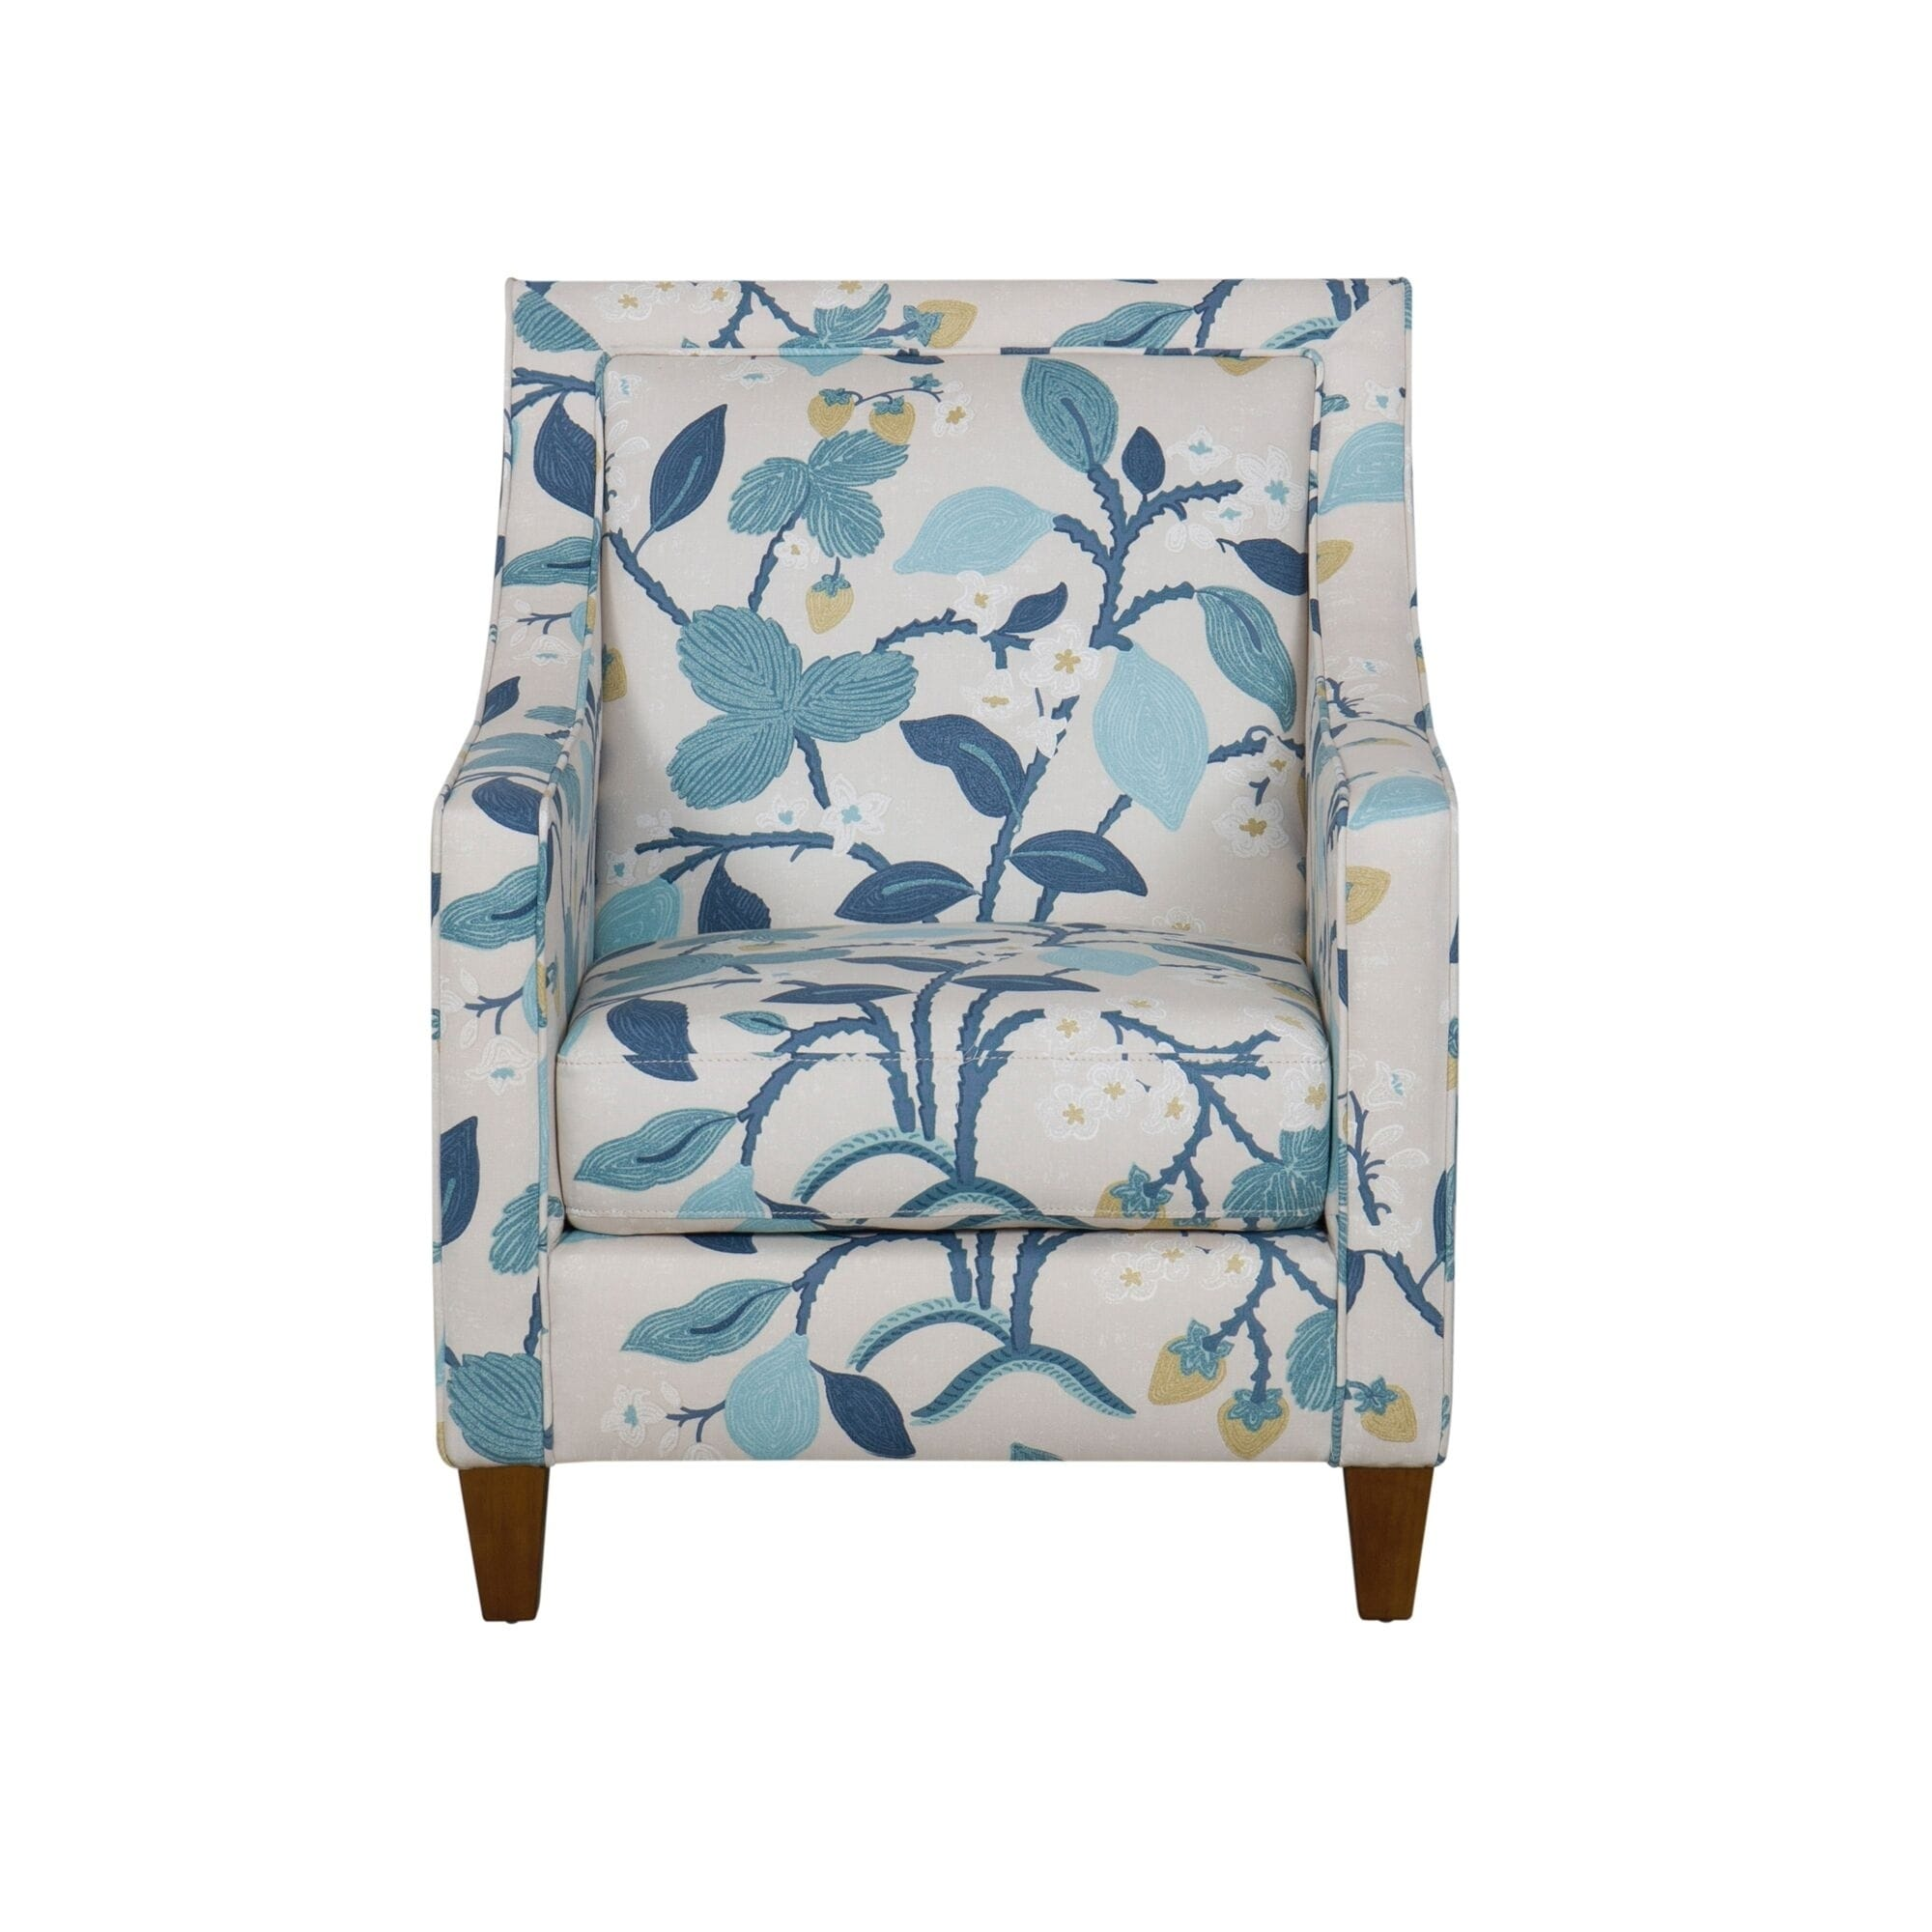 Phenomenal Copper Grove Holubivka Blue Floral Modern Accent Chair Gmtry Best Dining Table And Chair Ideas Images Gmtryco